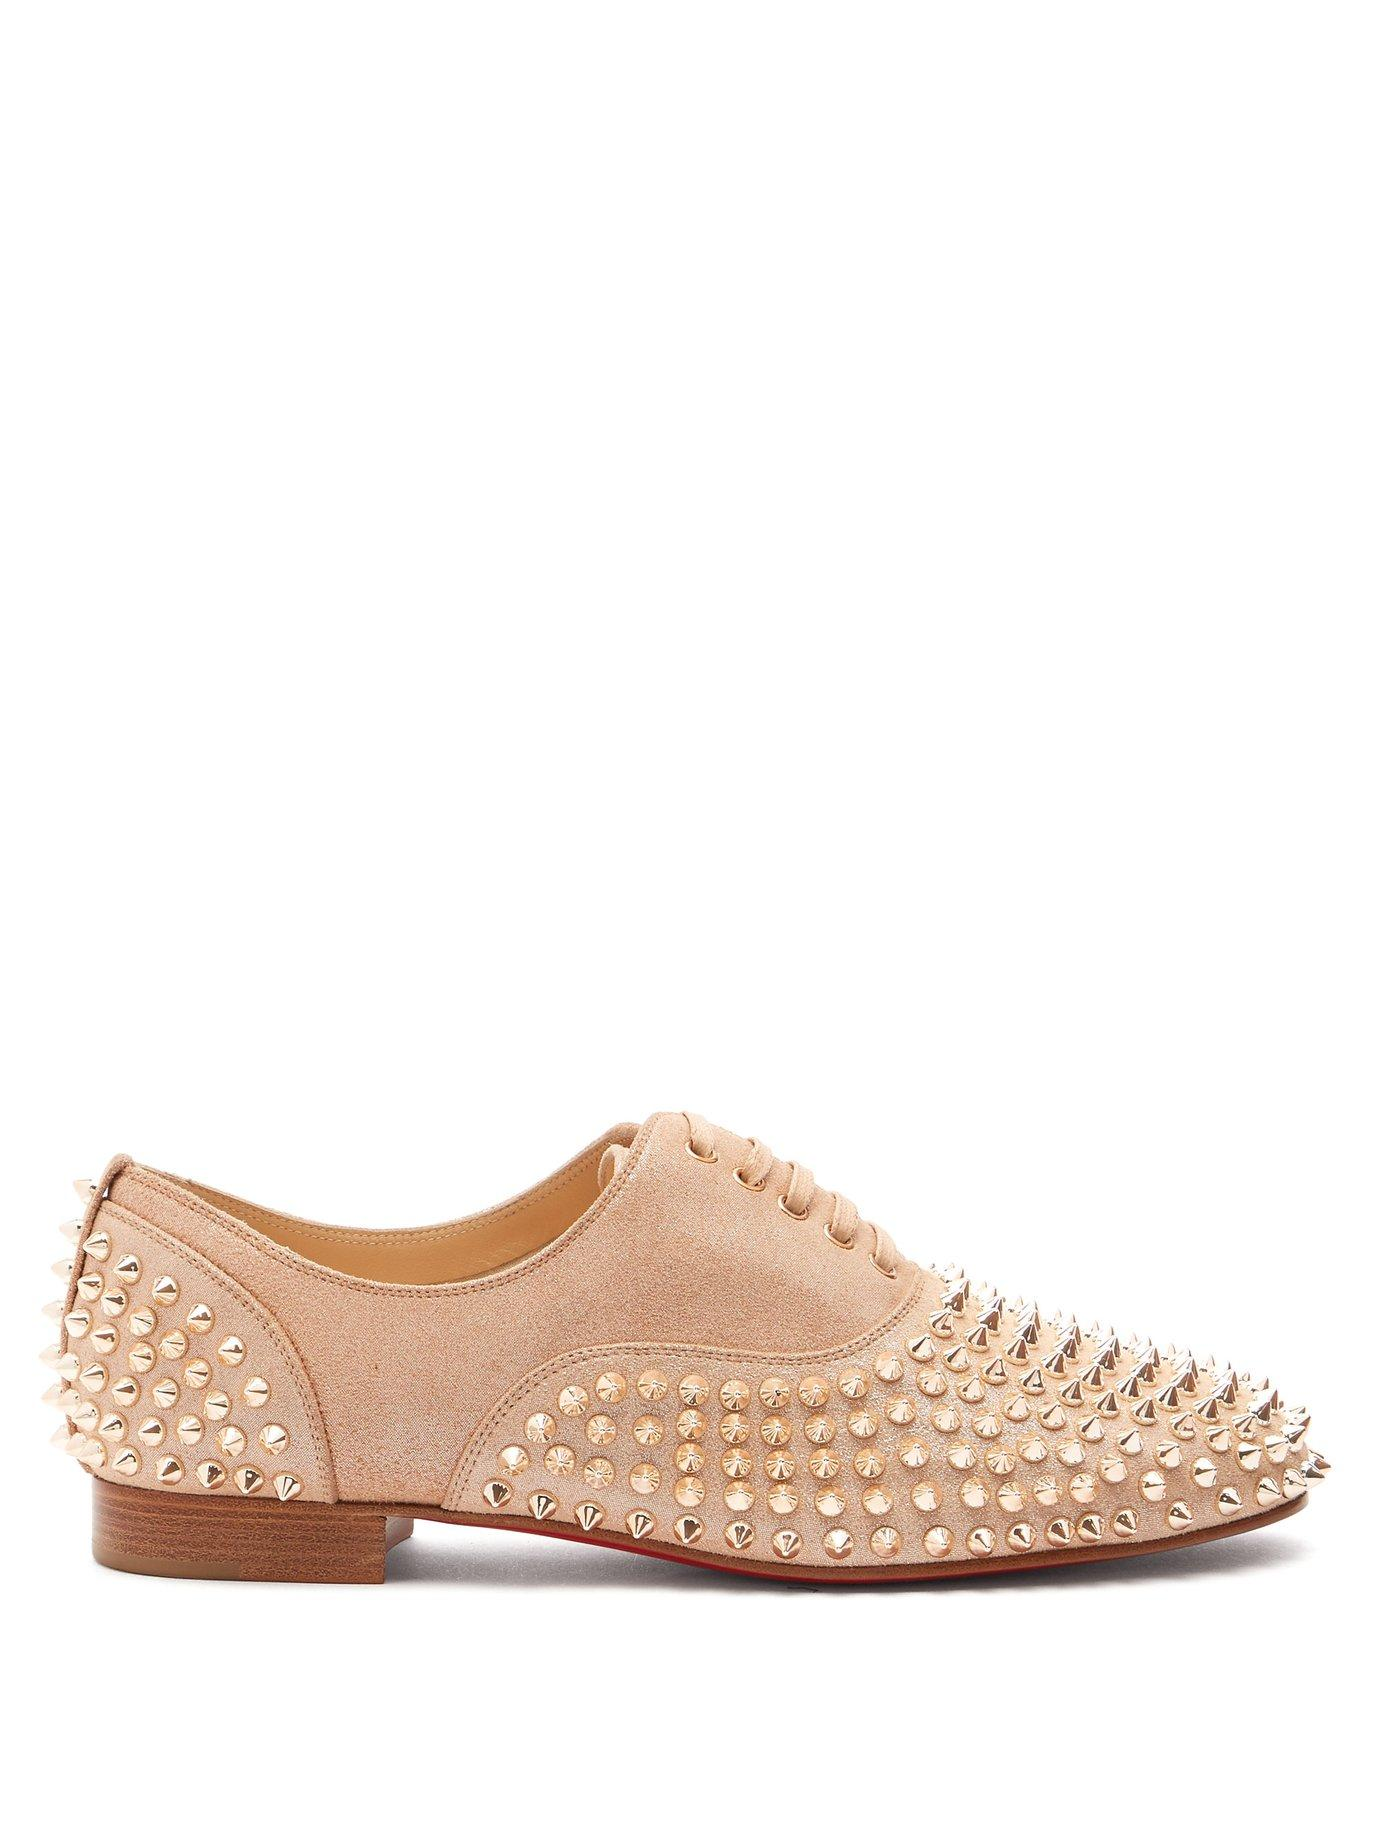 38411a990c7 Lyst - Christian Louboutin Freddy Studded Leather Derby Shoes